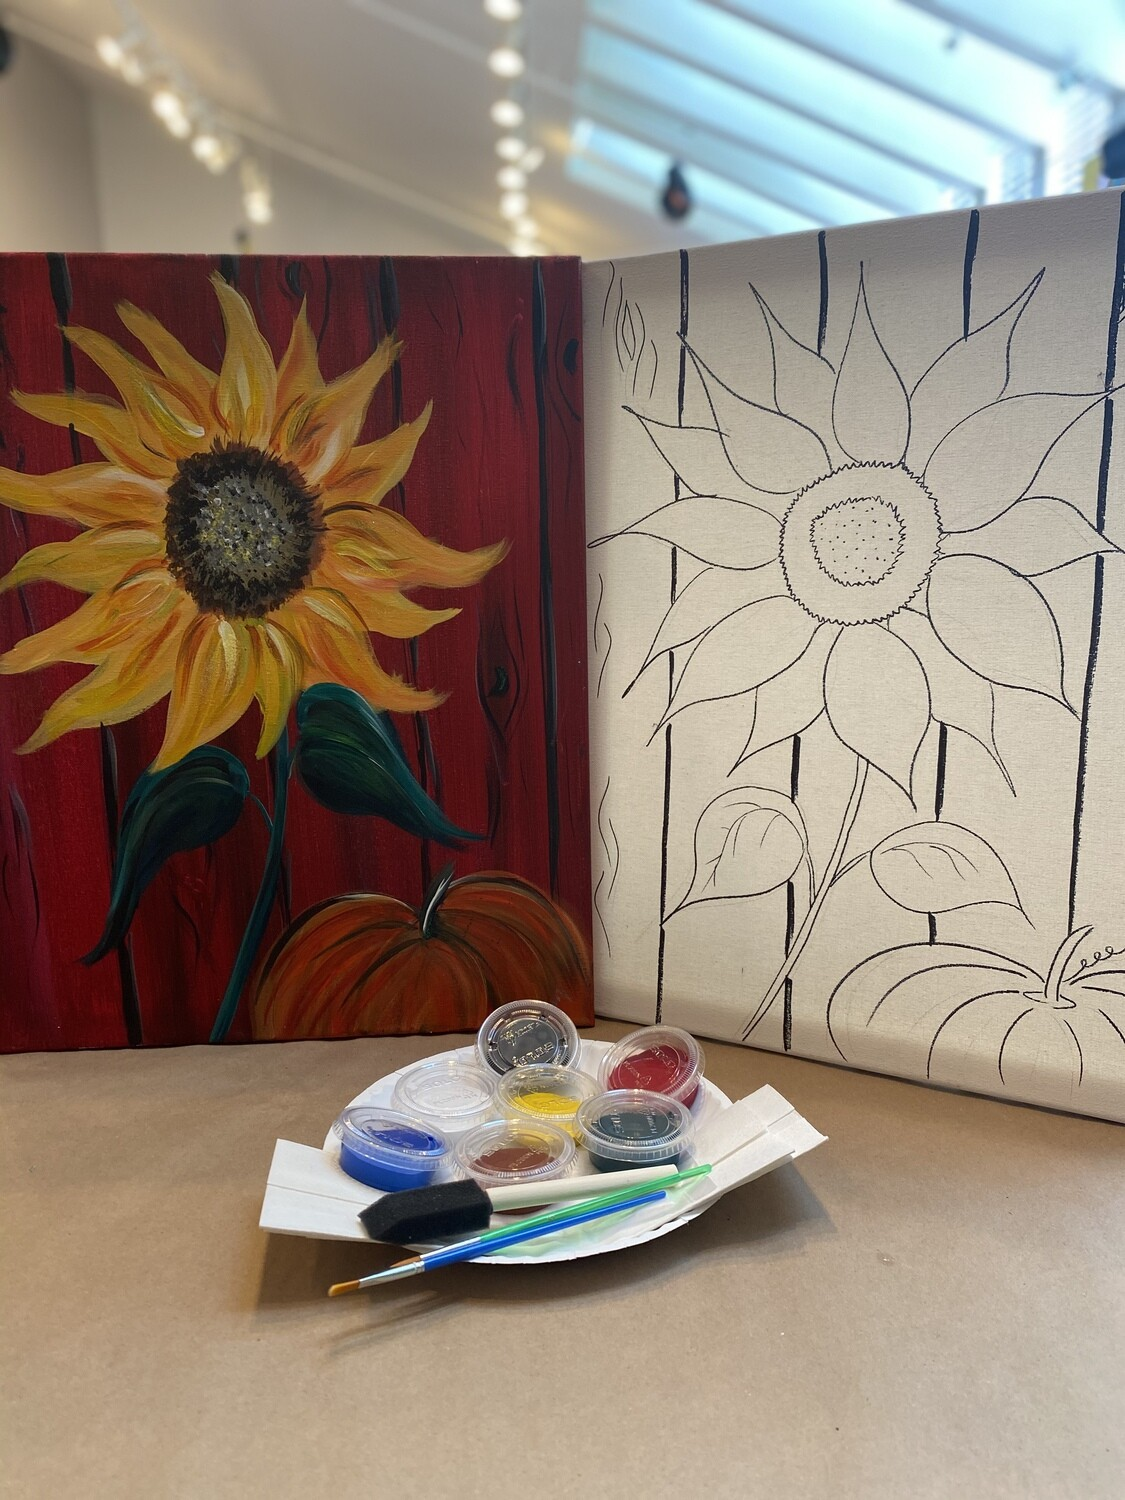 Sunflower & Pumpkin 'At Home Art Kit' 16x20 Canvas